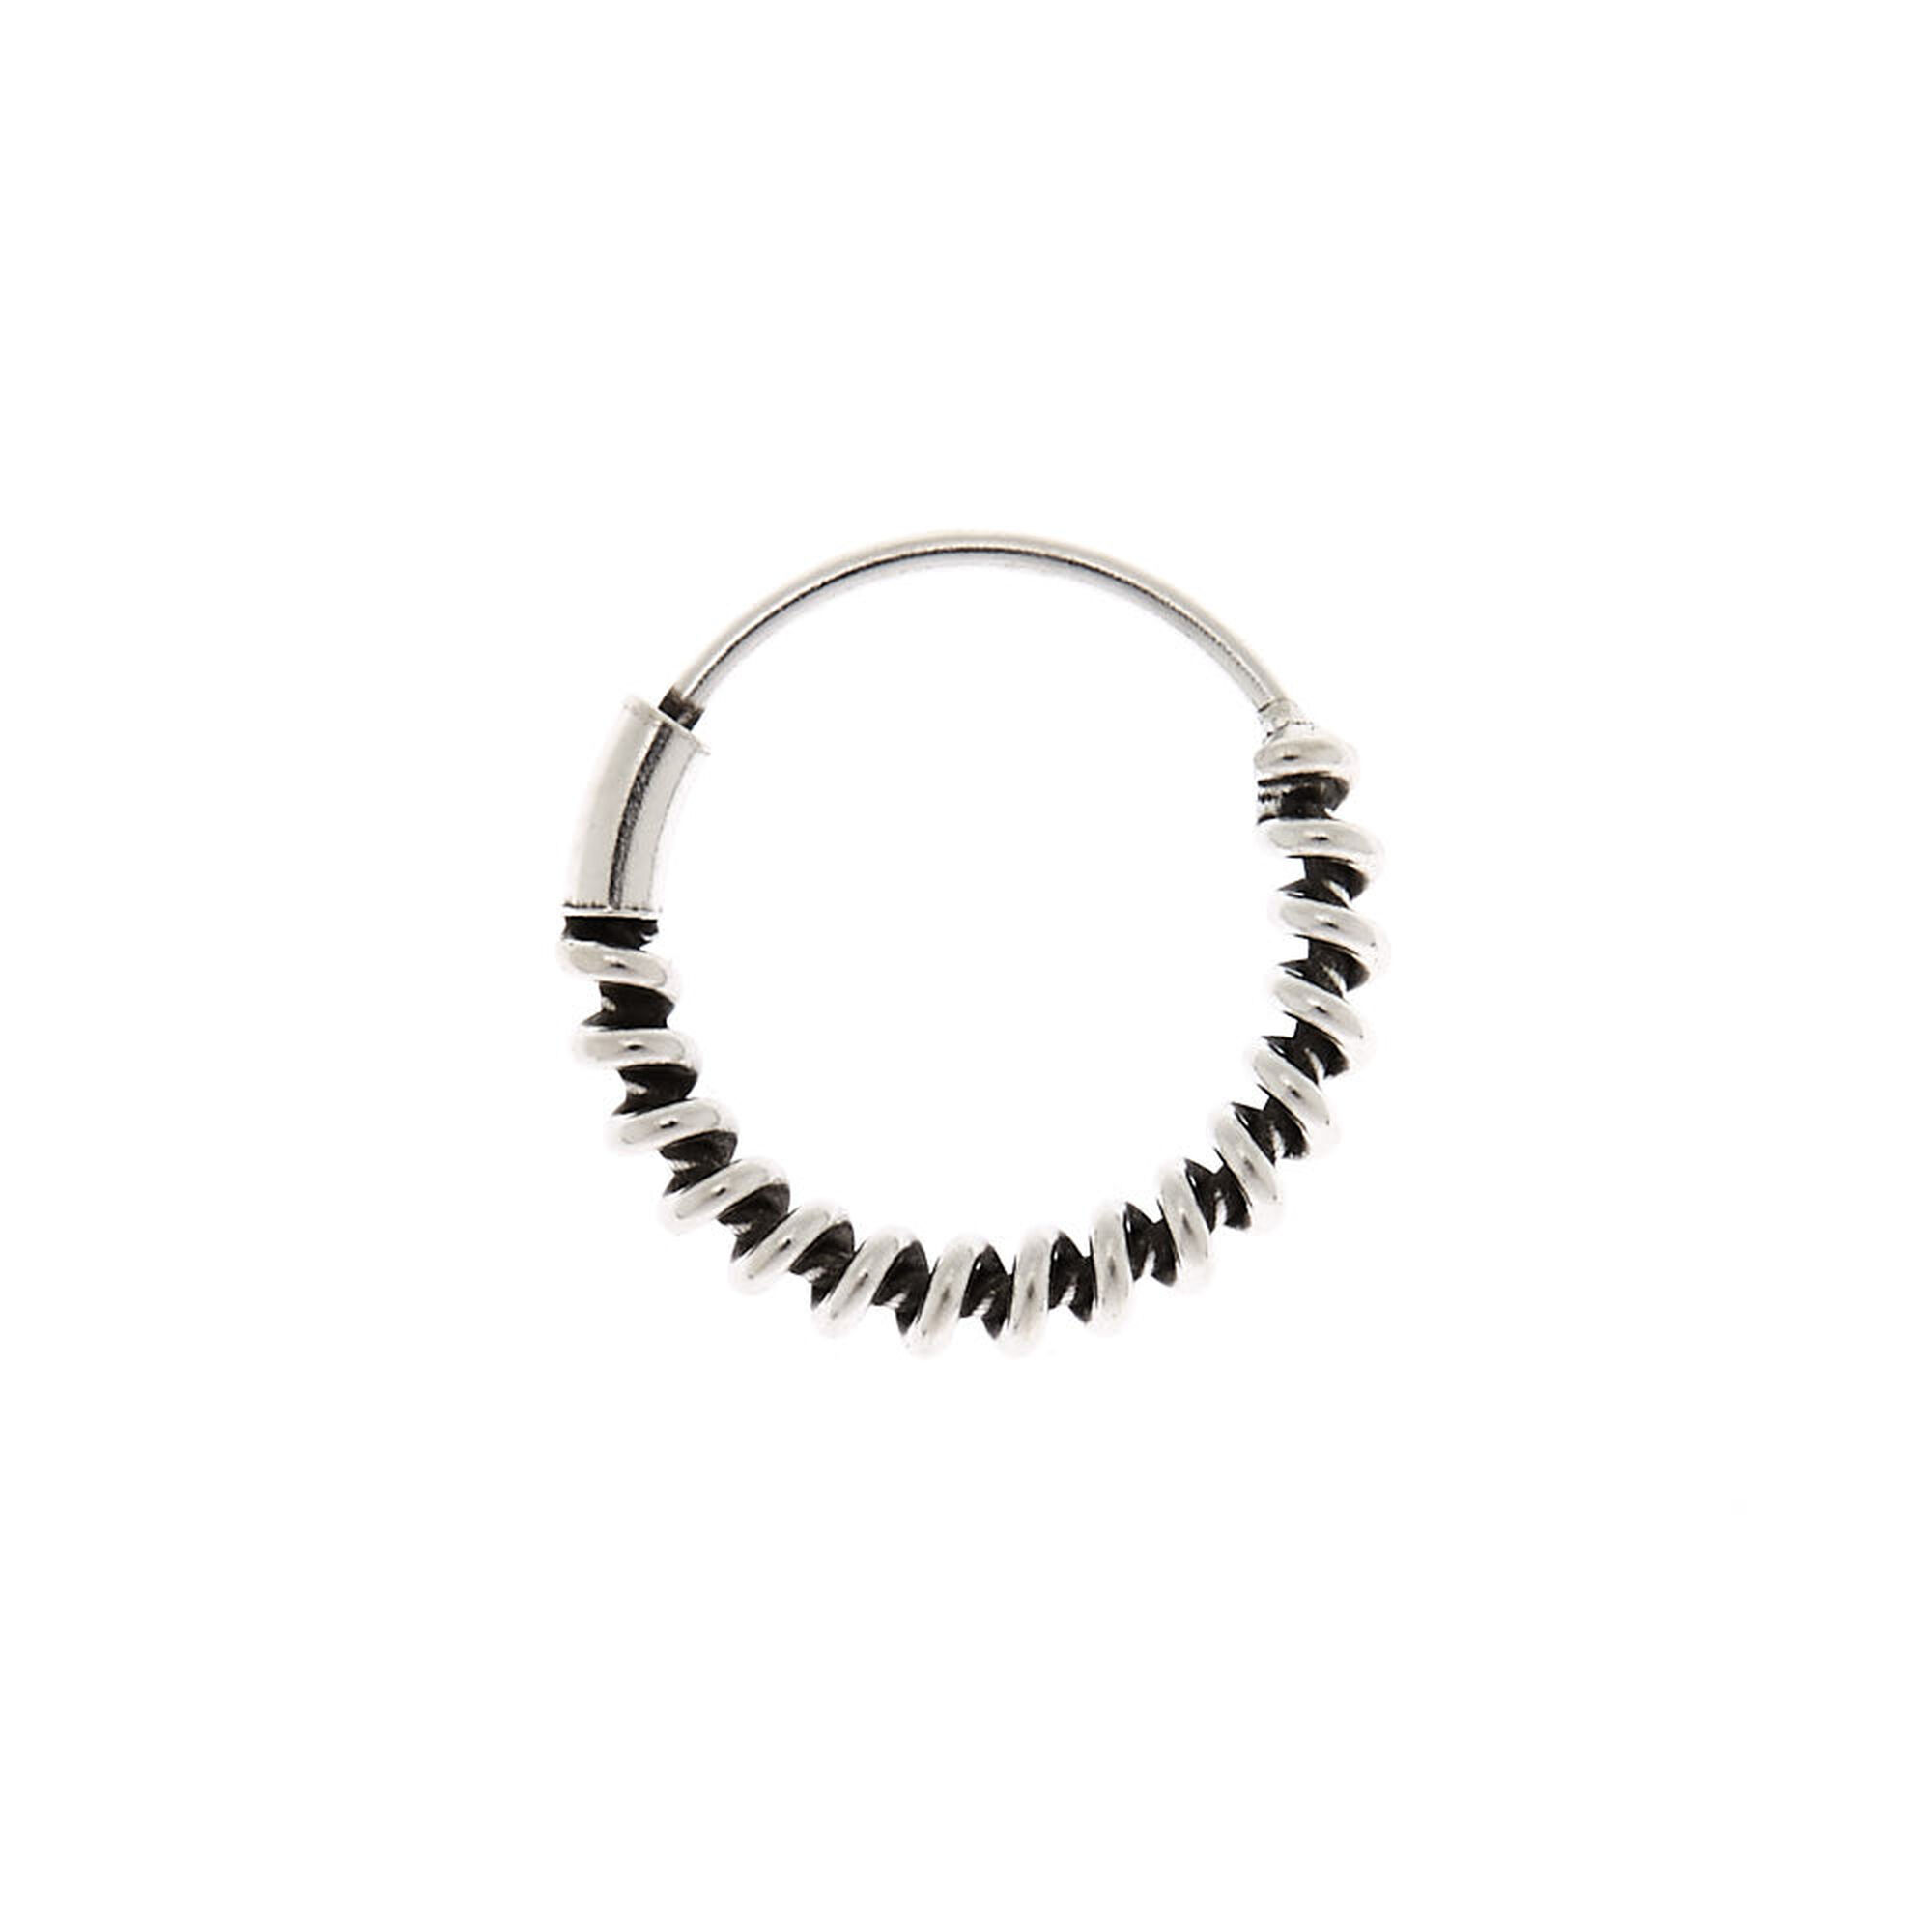 Silver Twisted Cartilage Hoop Earring   Claire's US